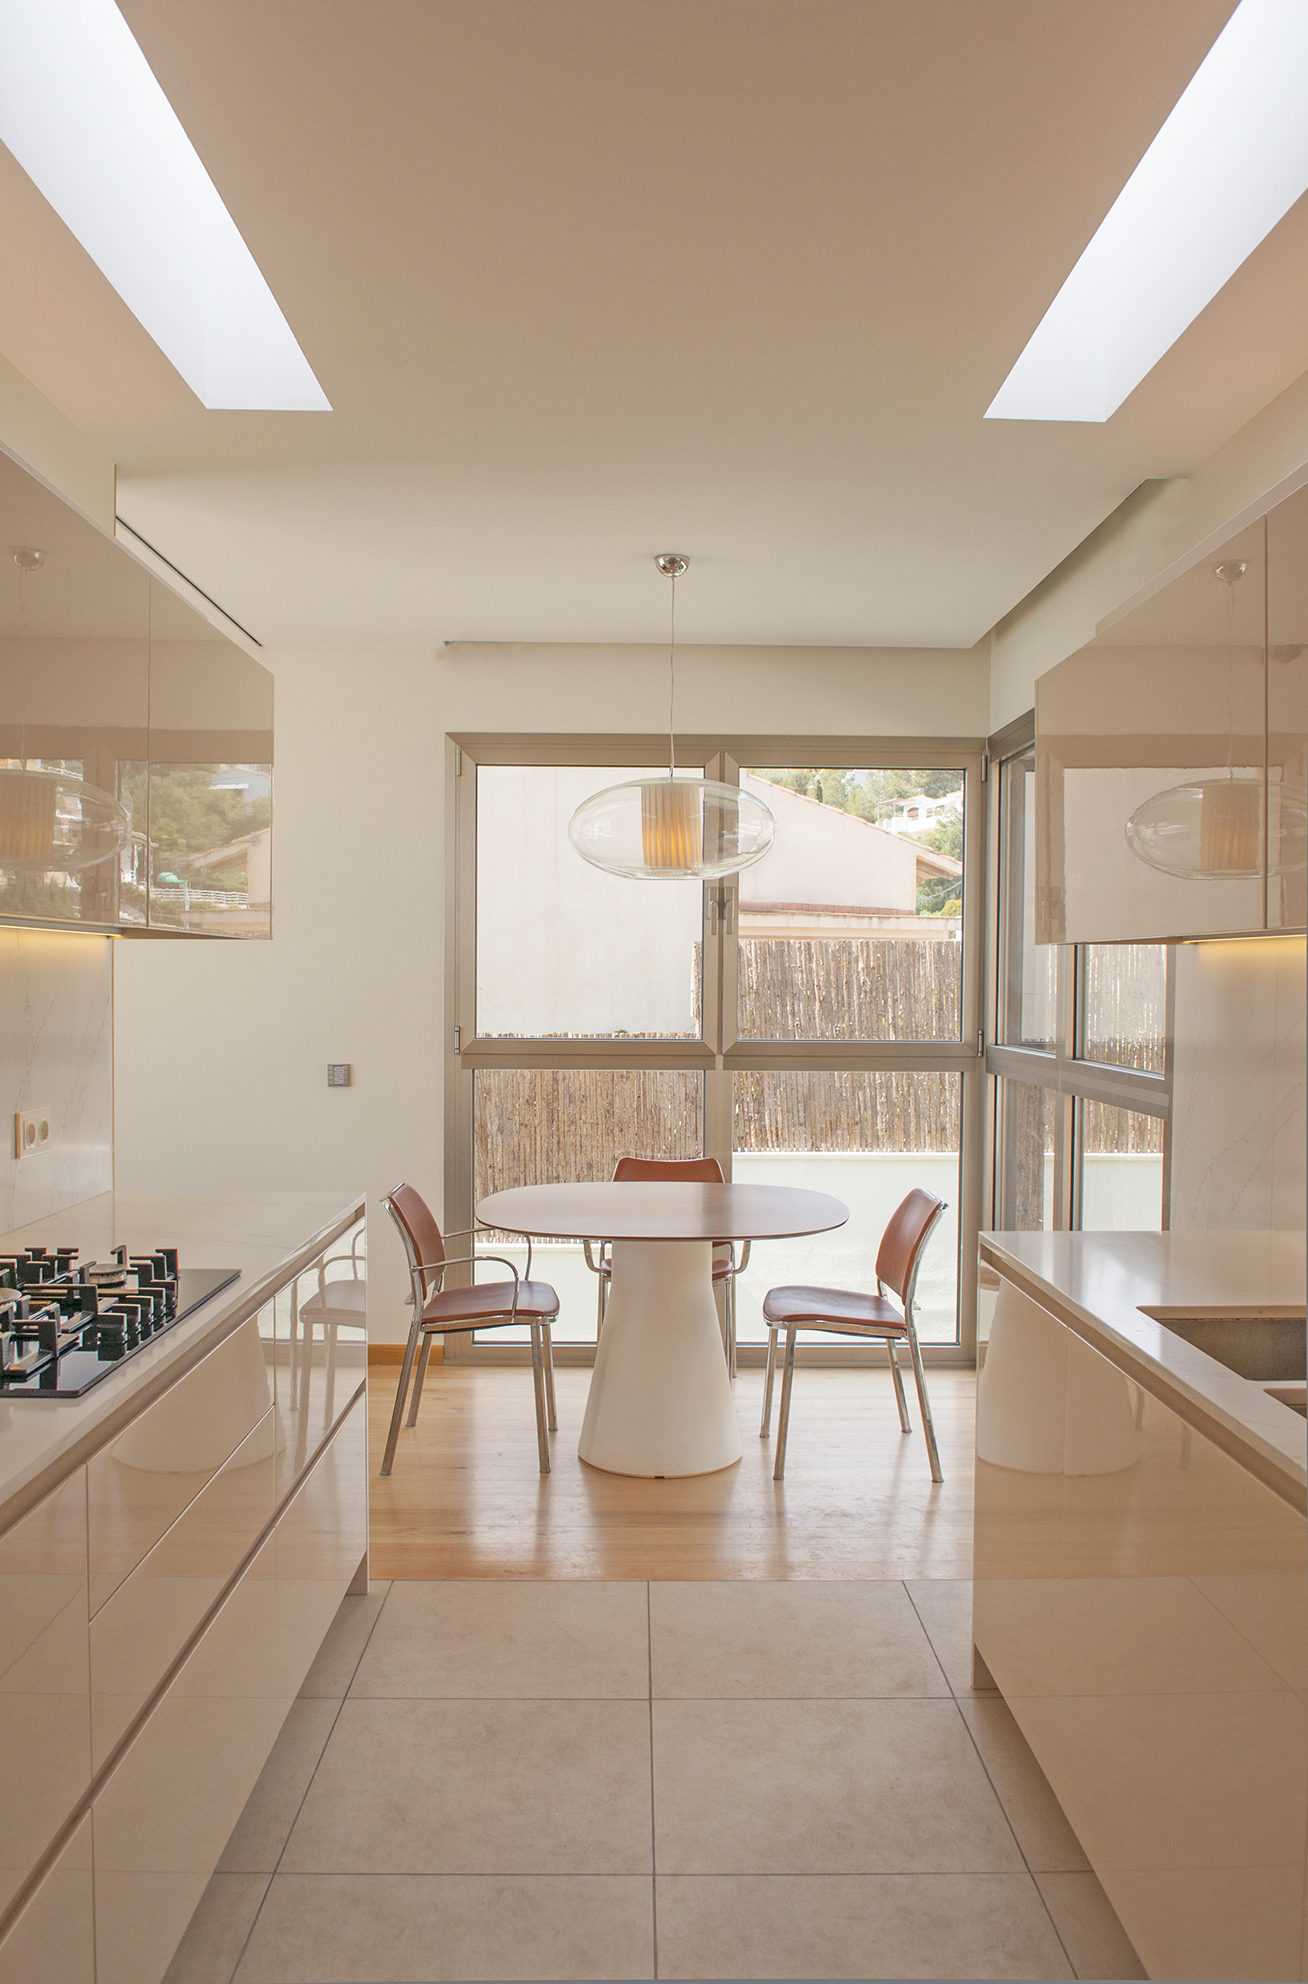 21-rardo-architects-houses-in-sitges-interior-desing-dining-room-kitchen-lighting-lights